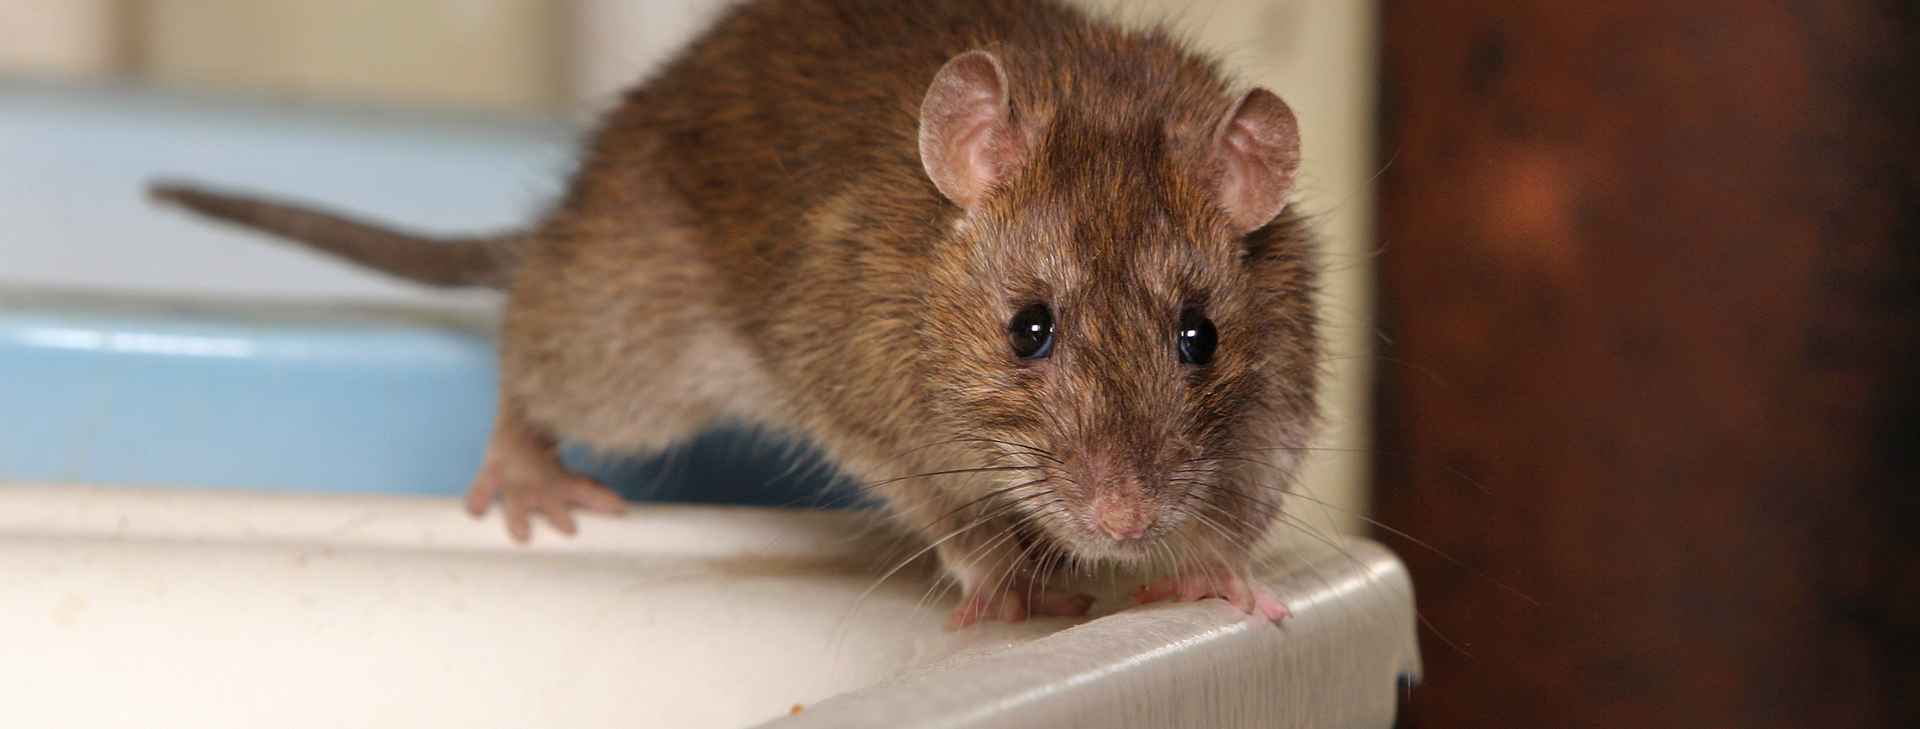 Rodent - Termitrust Home